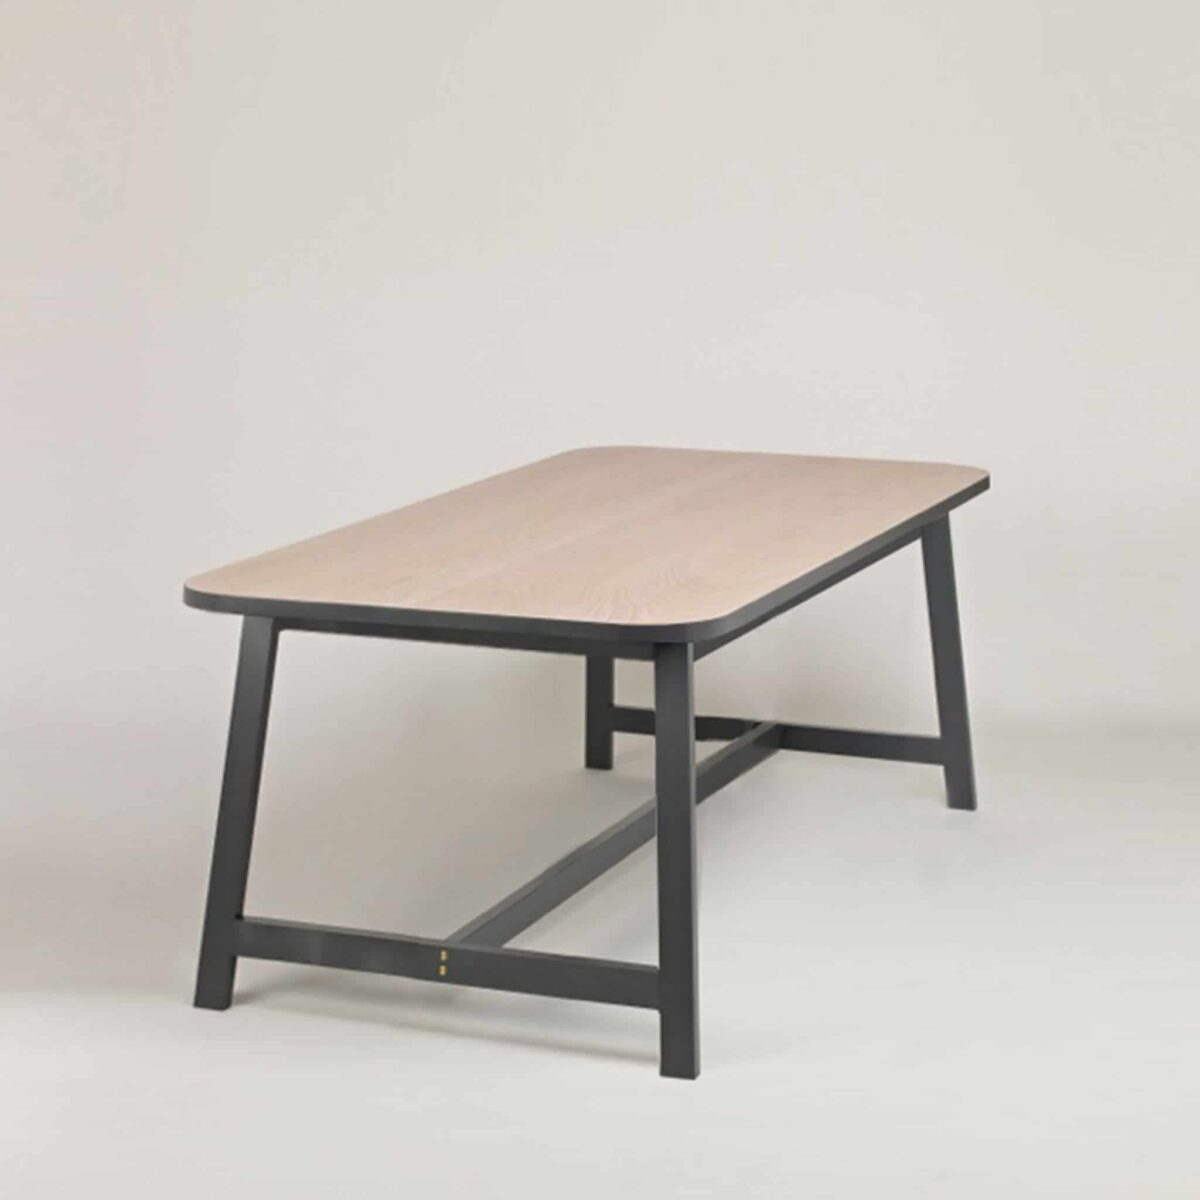 series-three-dining-table-beech-chamberlayne-grey-side-another-country-001